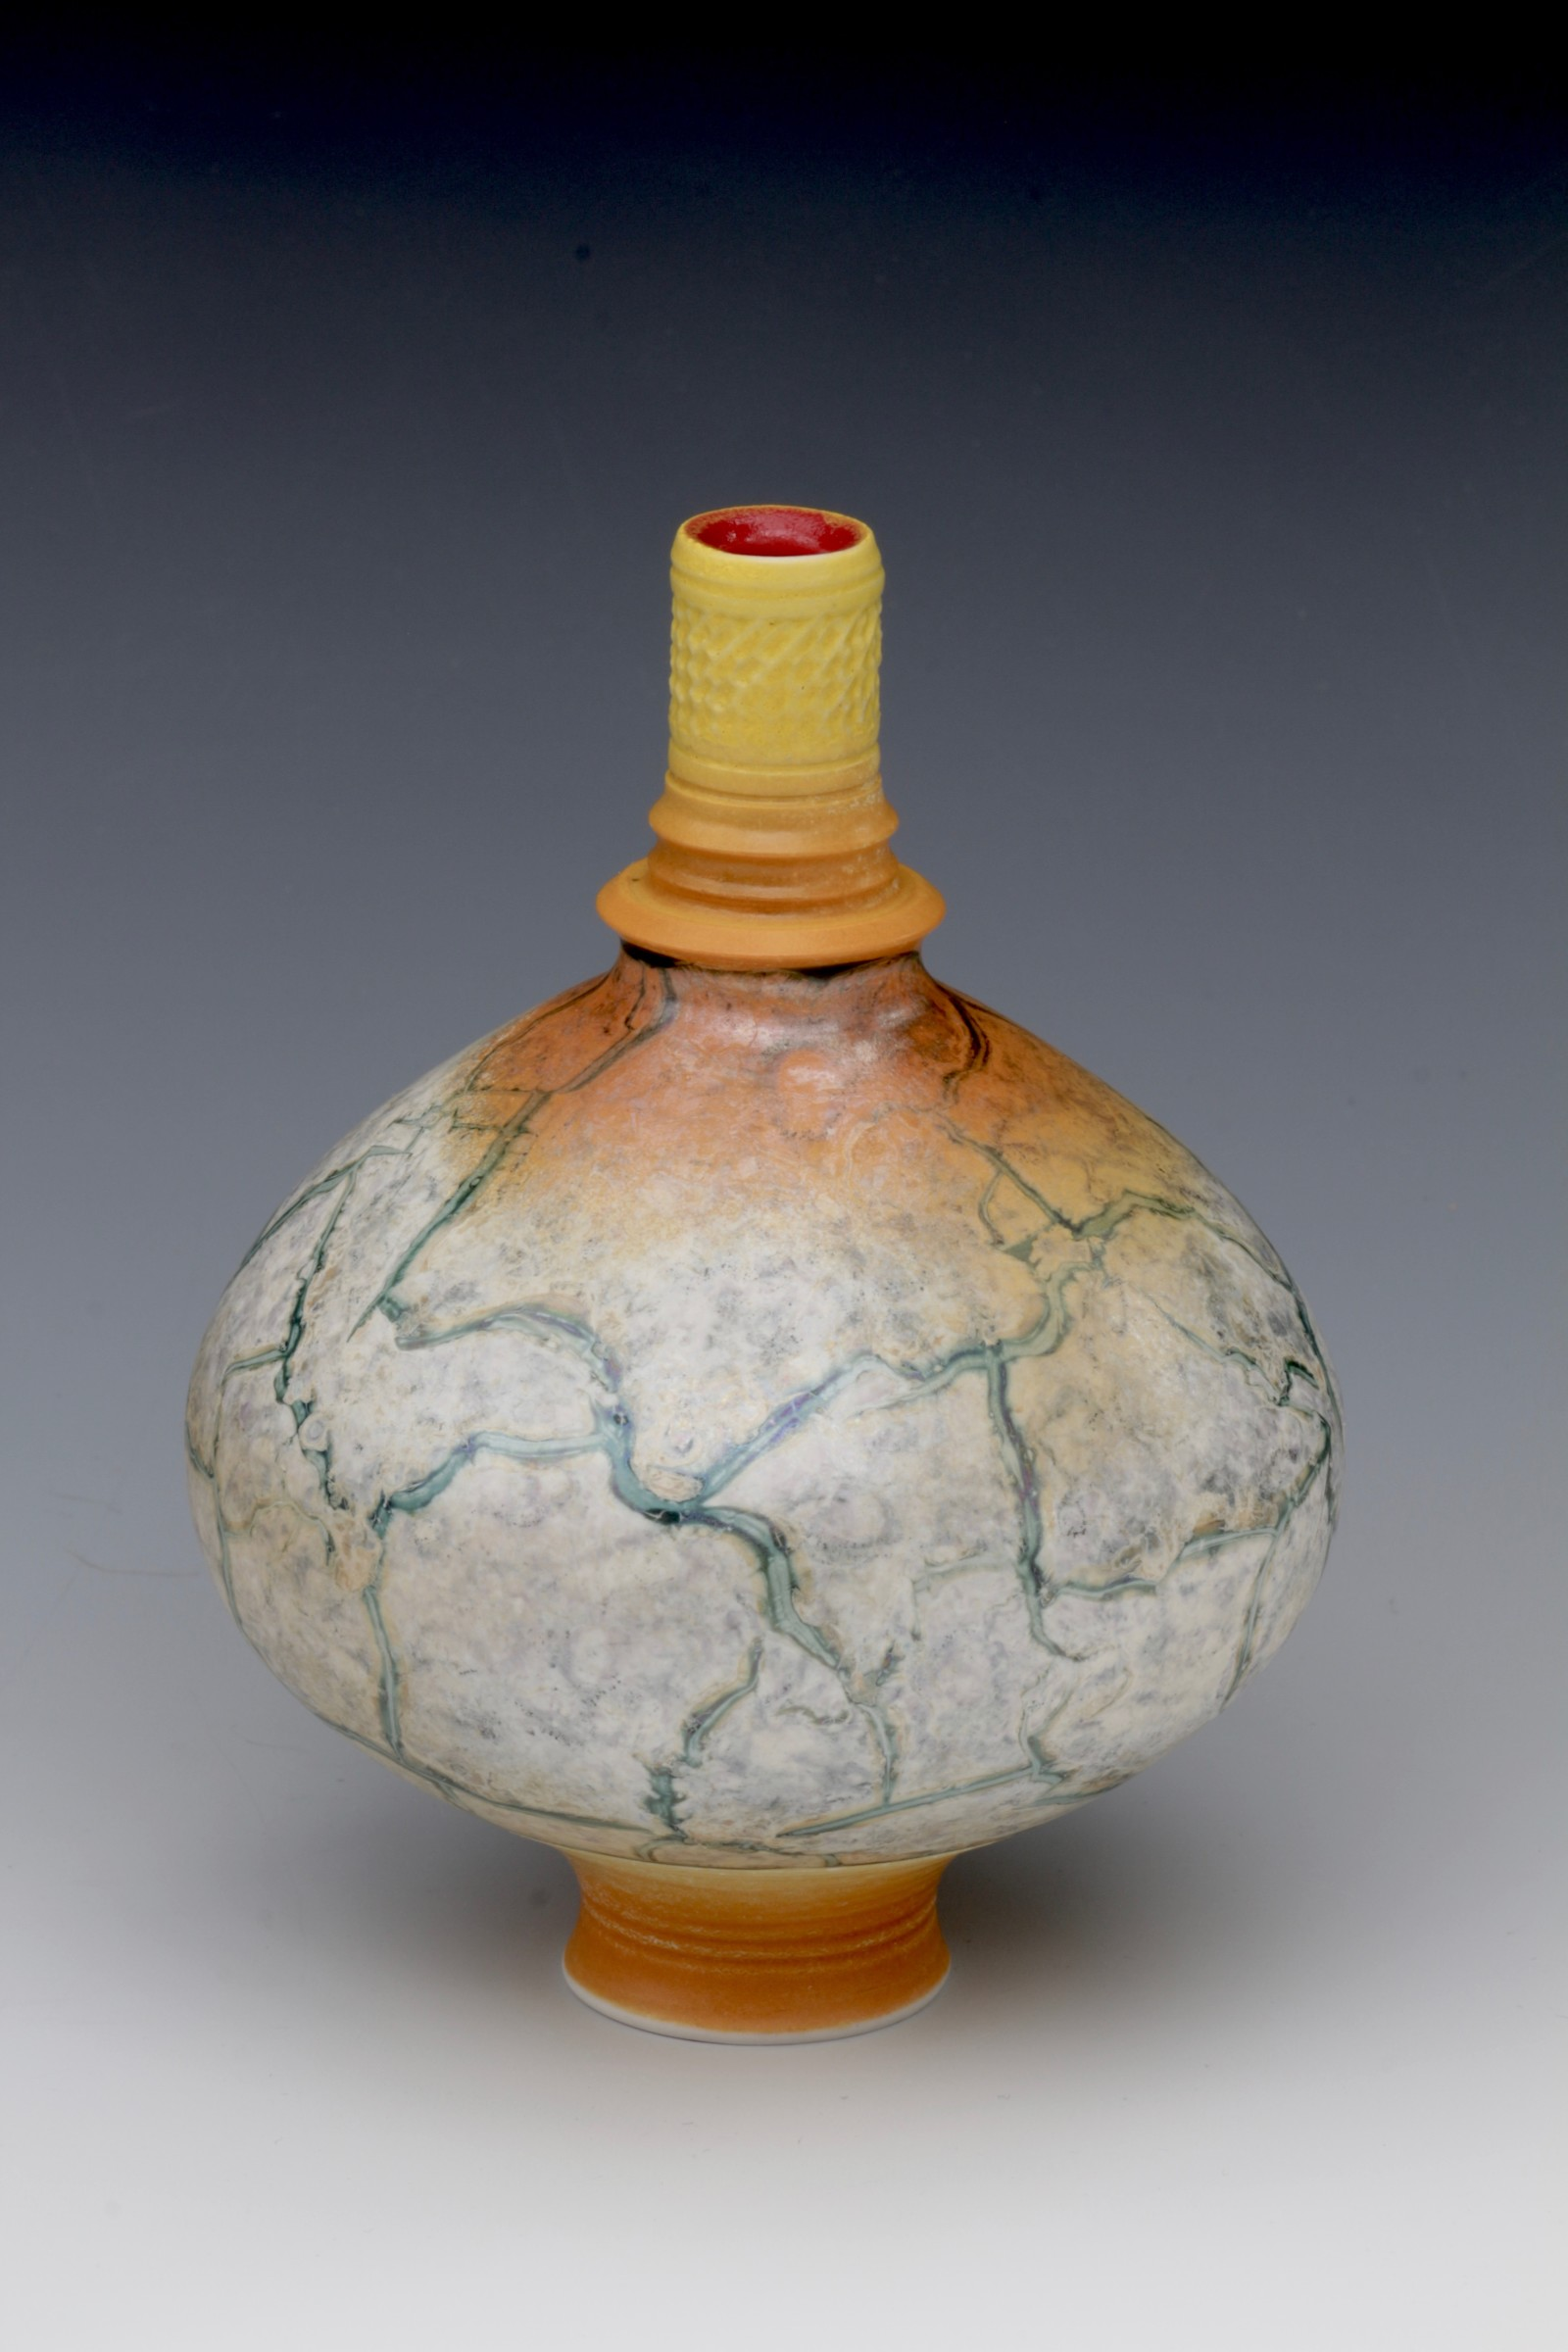 "<span class=""link fancybox-details-link""><a href=""/artists/61-geoffrey-swindell/works/6330-geoffrey-swindell-bud-vase-2019/"">View Detail Page</a></span><div class=""artist""><strong>Geoffrey Swindell</strong></div> <div class=""title""><em>Bud Vase</em>, 2019</div> <div class=""signed_and_dated"">Stamped on the bottom</div> <div class=""medium"">Porcelain</div><div class=""copyright_line"">Own Art: £16 x 10 Months 0% APR</div>"